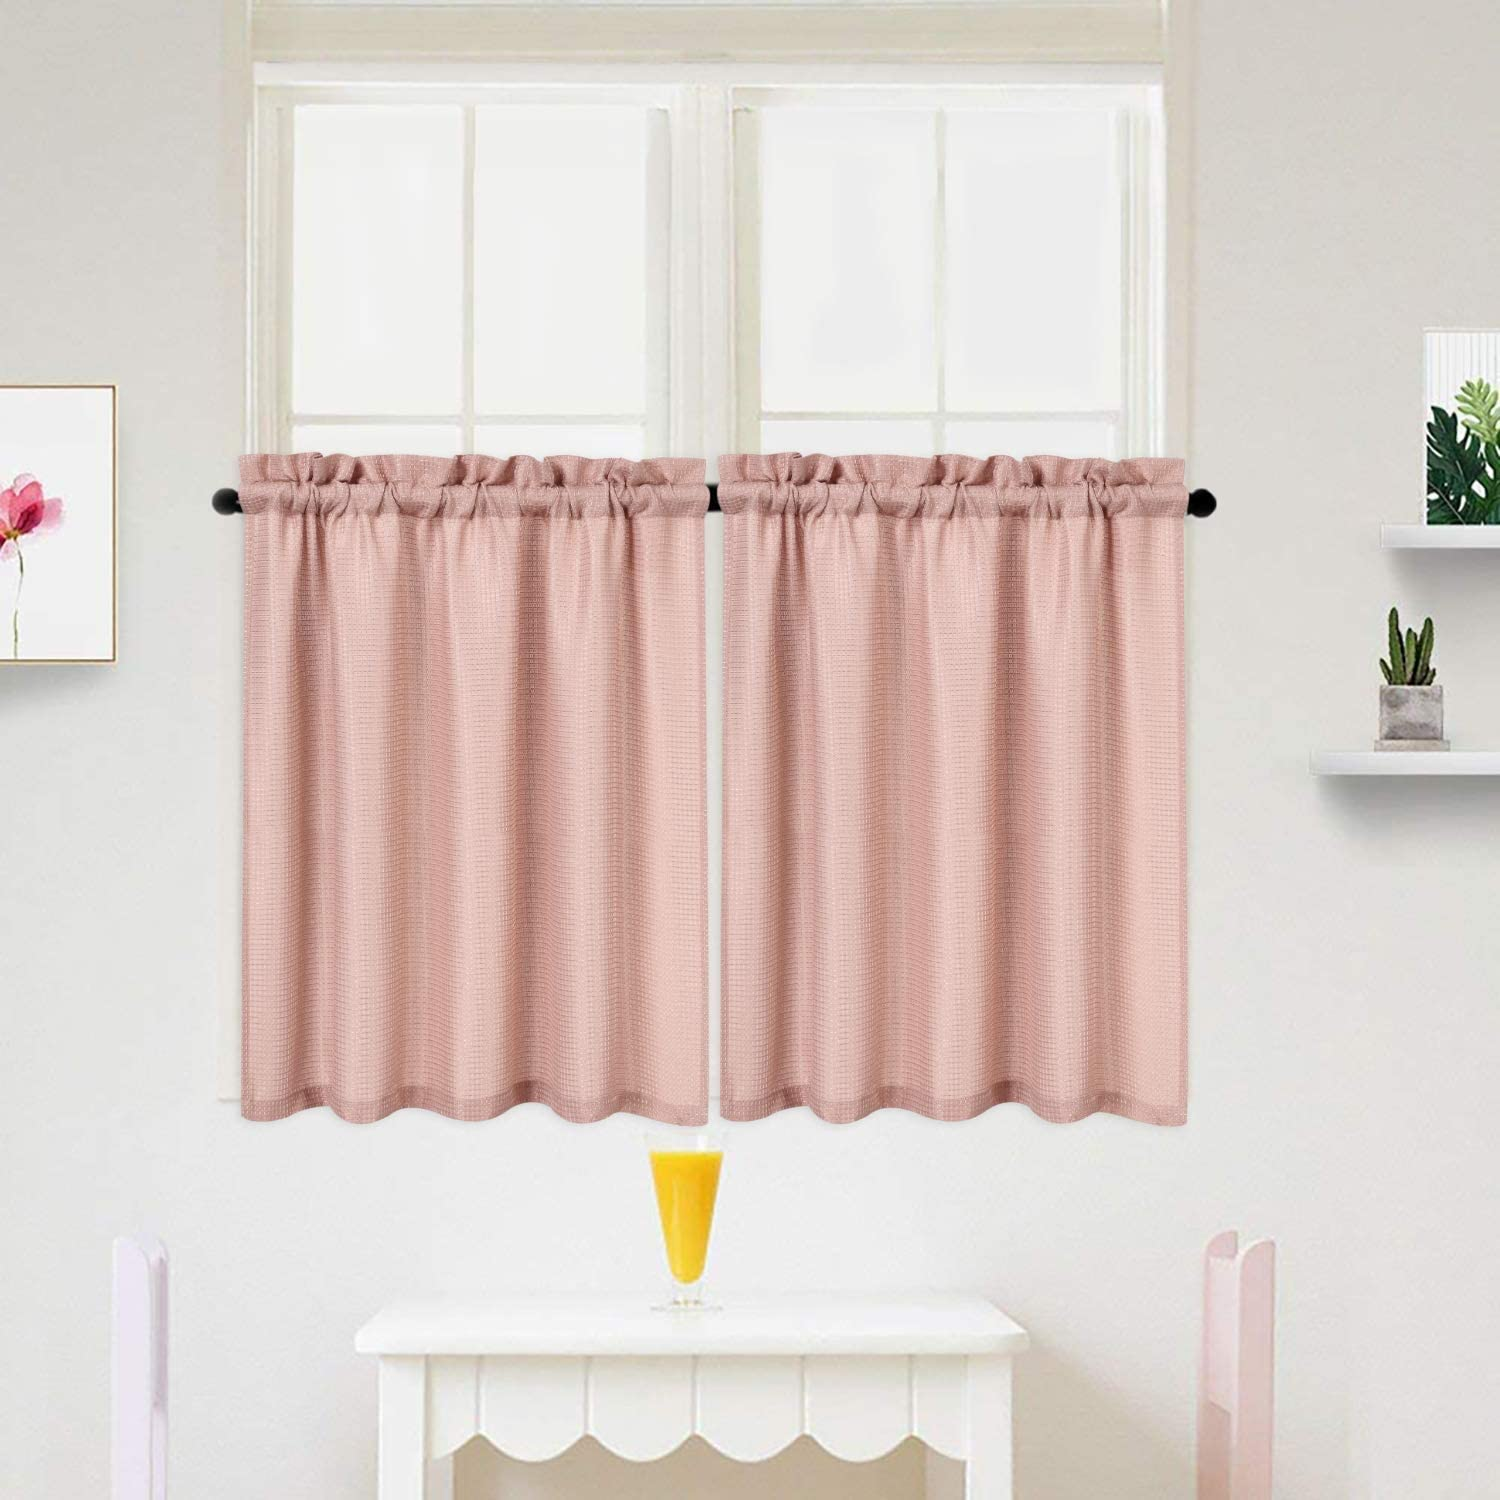 IDEALHOUSE Pink Tier Curtains,Waffle Woven Textured Short Window Curtain for Cafe,Bathroom,Kitchen & Kids Bedroom Rod Pocket Curtains (2 Panels, 30Inch Wide by 36Inch Long)